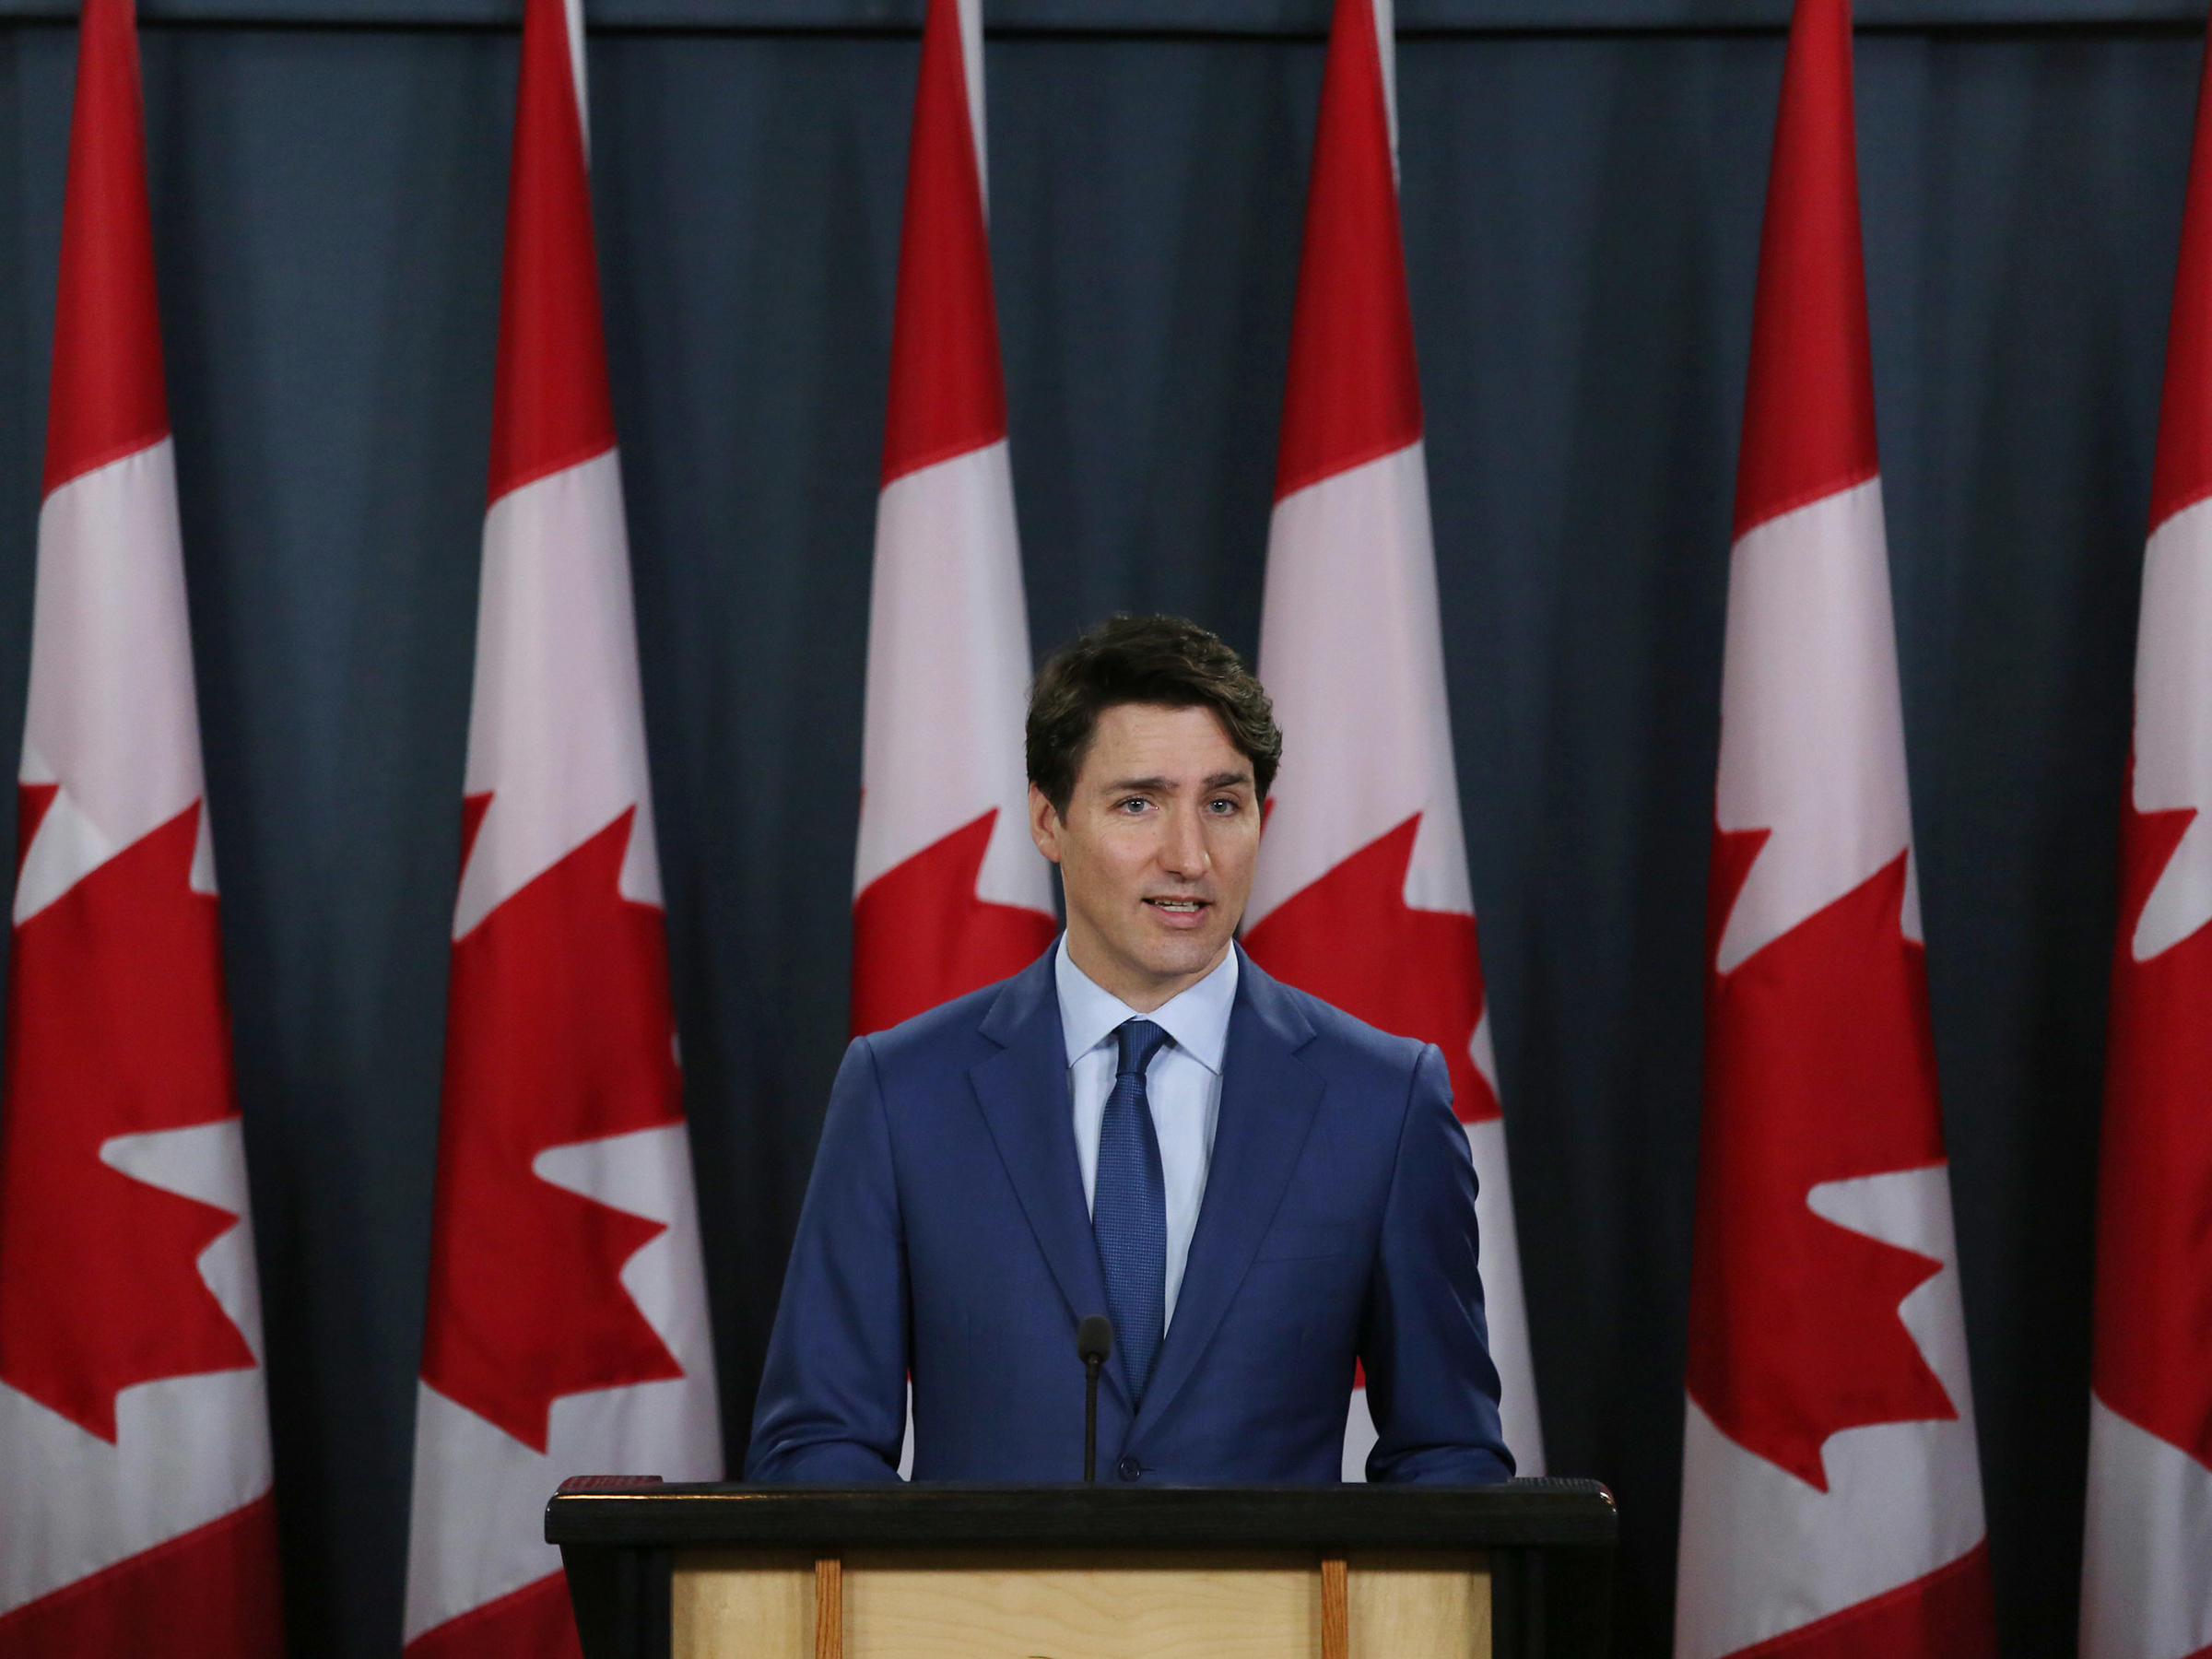 Trudeau: Mistakes made in SNC-Lavalin affair, no rules broken